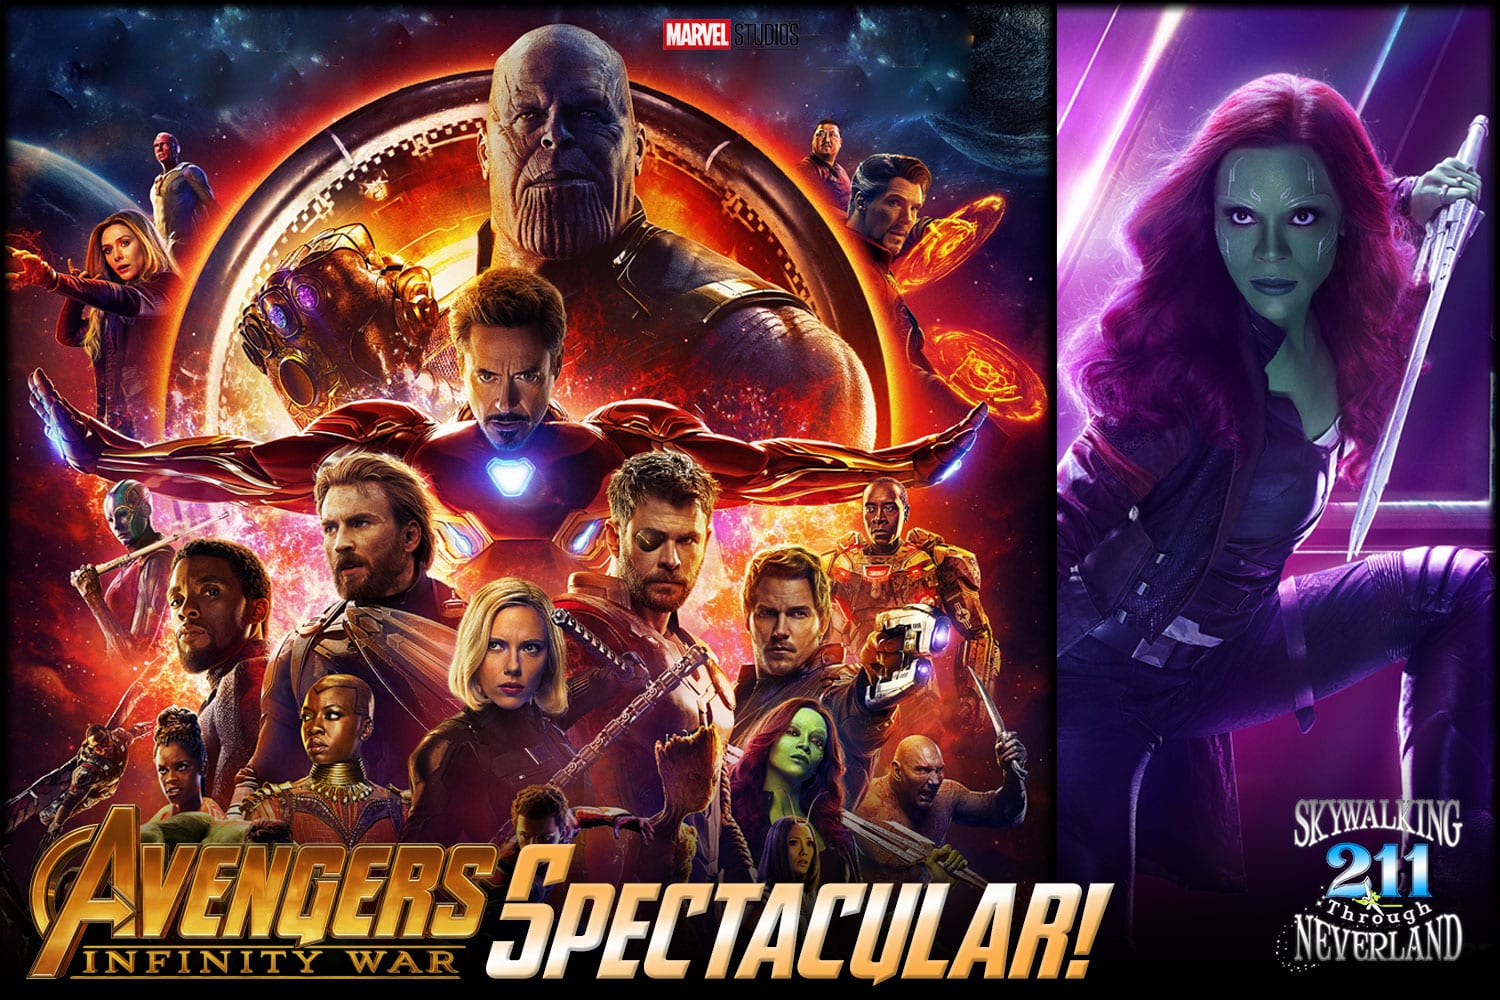 Skywalking Through Neverland #211: Avengers Infinity War Spectacular!